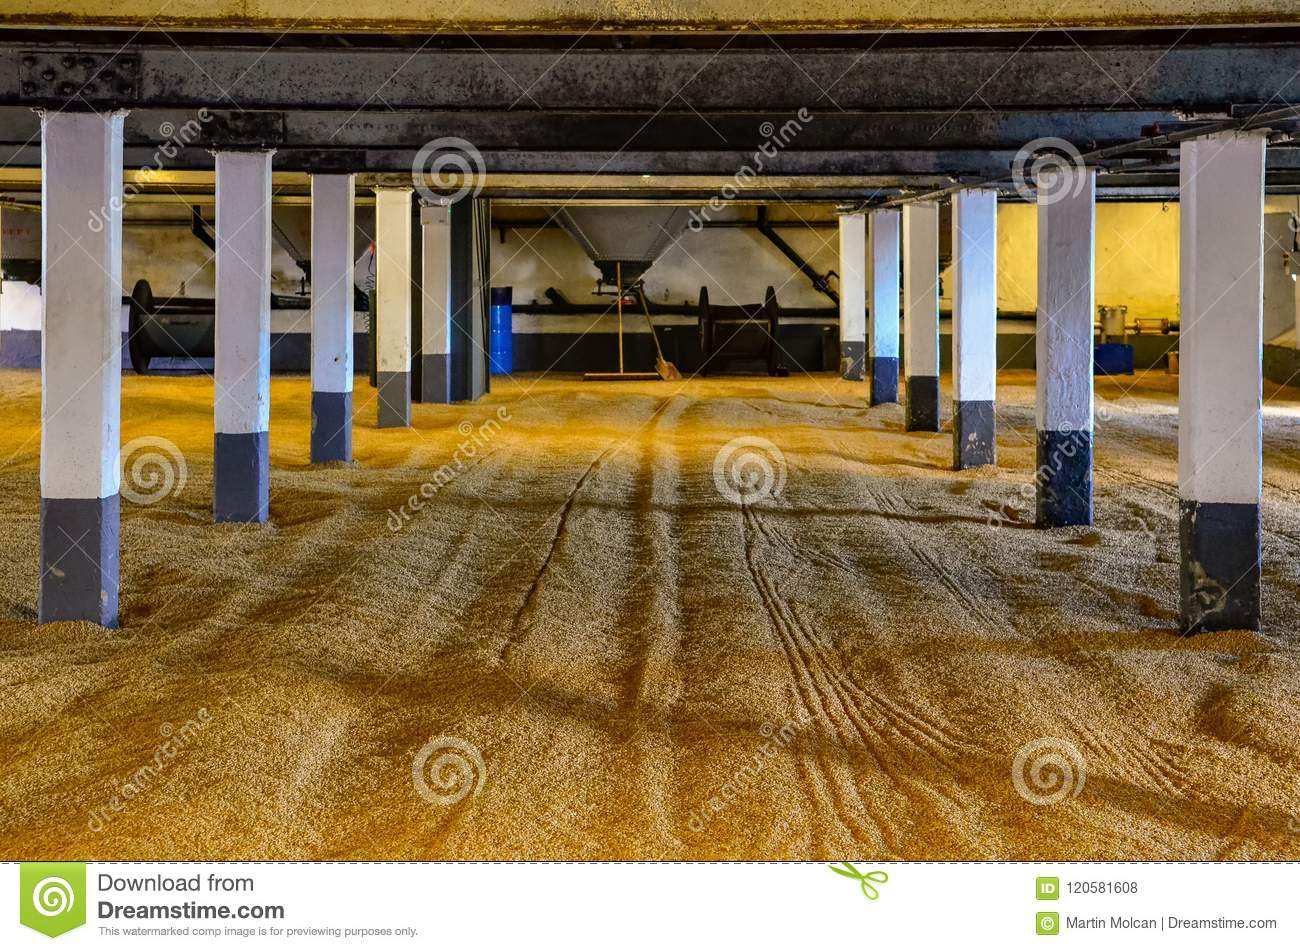 Barley malt on malting floor in the distillery, Scotland